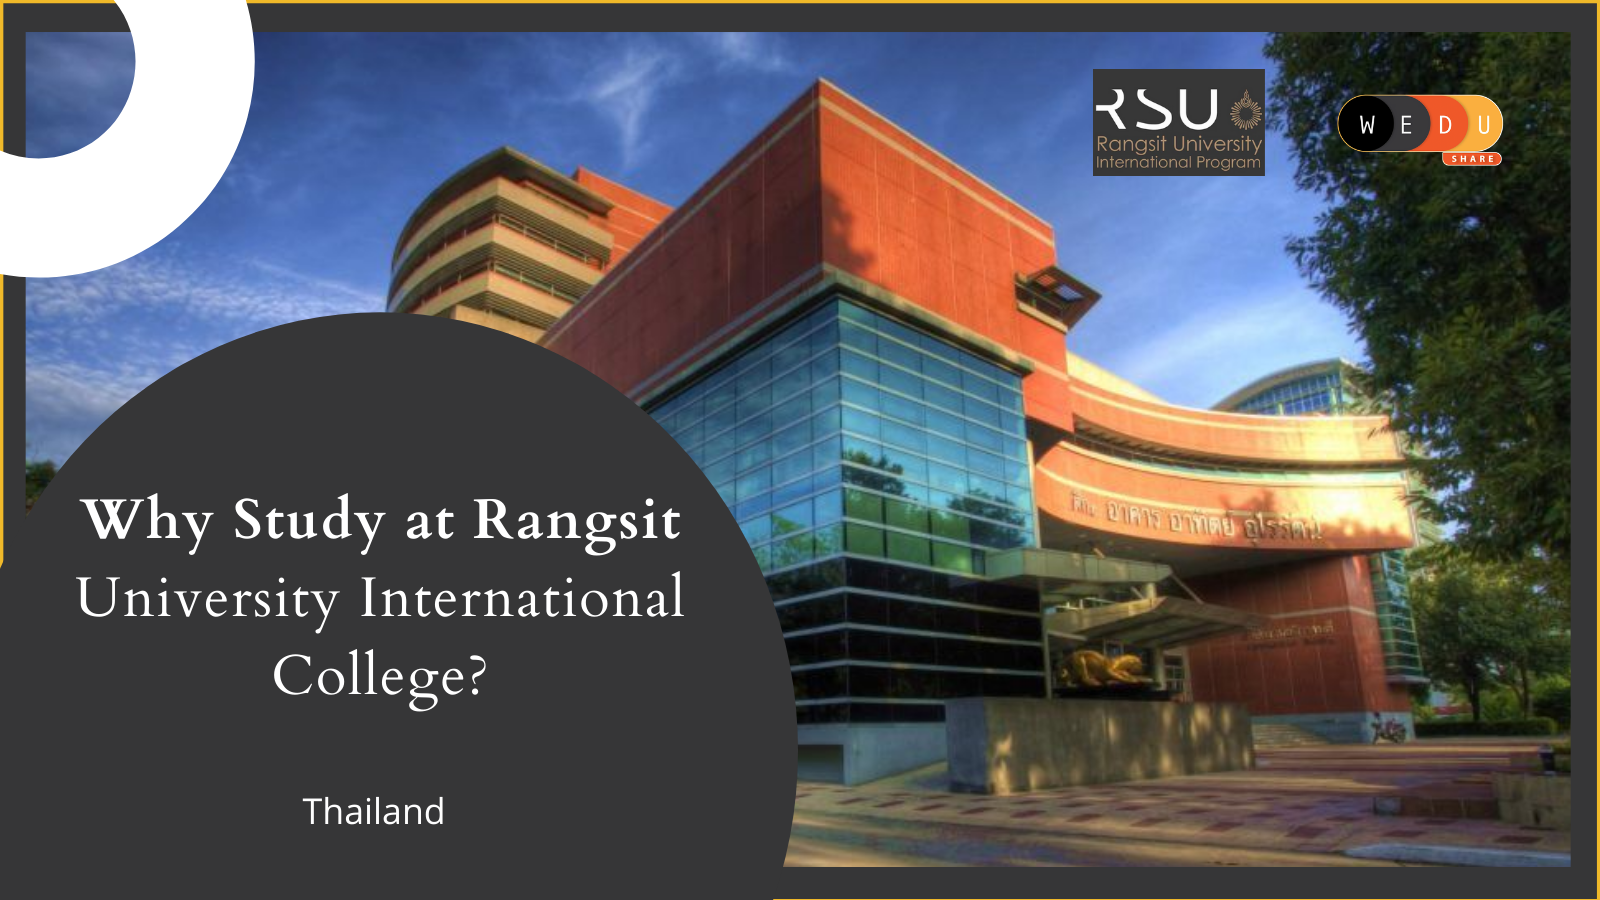 Rangsit University International College